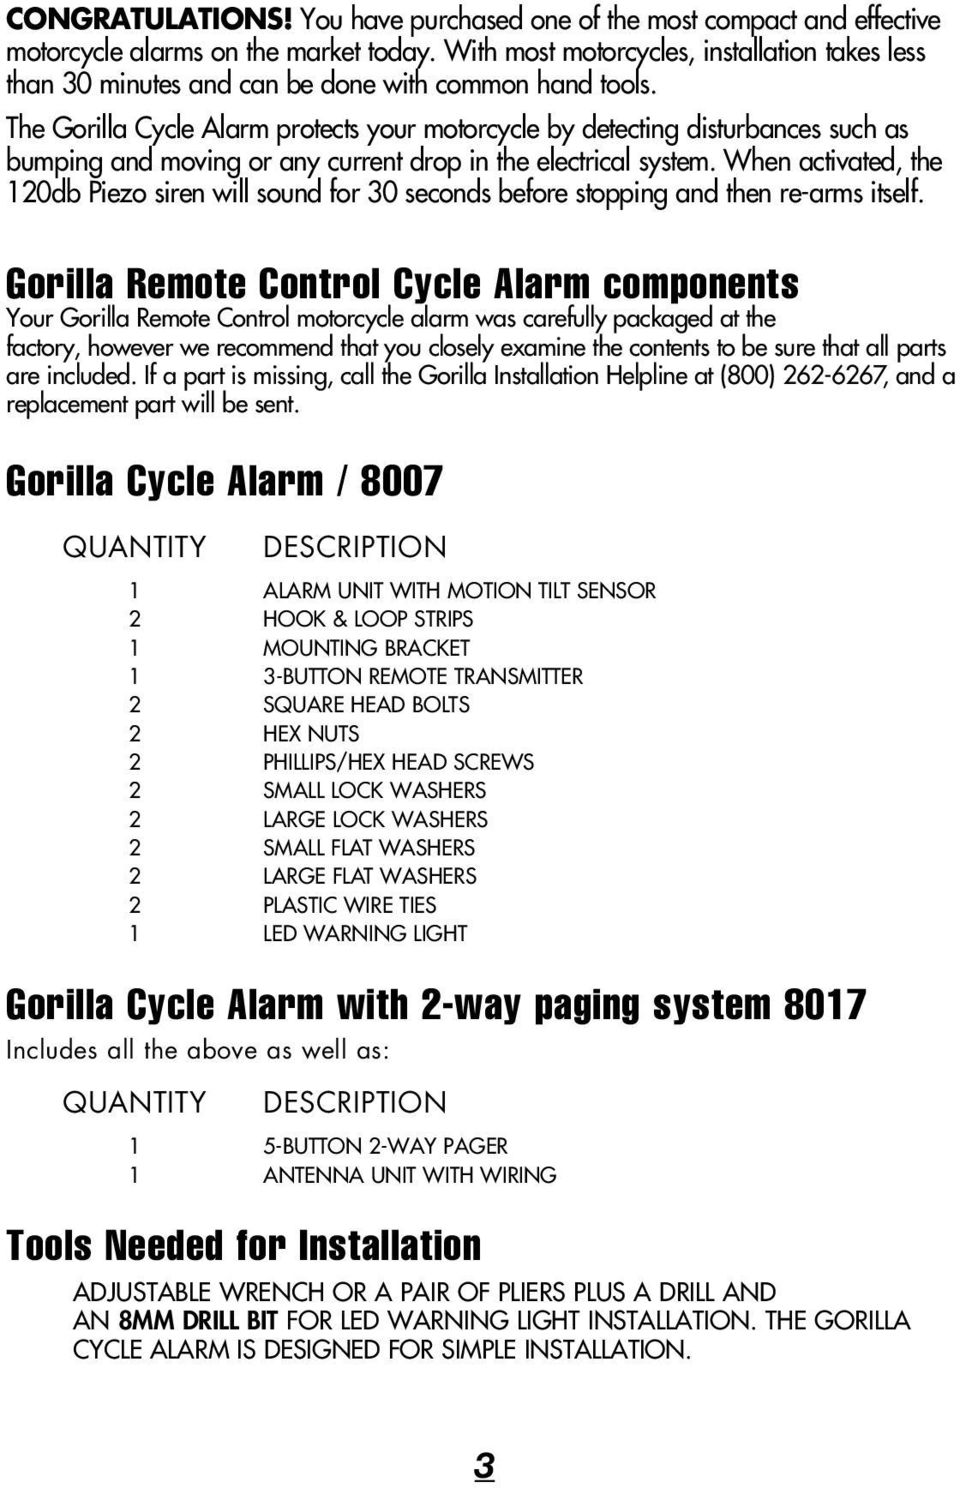 The Gorilla Cycle Alarm protects your motorcycle by detecting disturbances such as bumping and moving or any current drop in the electrical system.